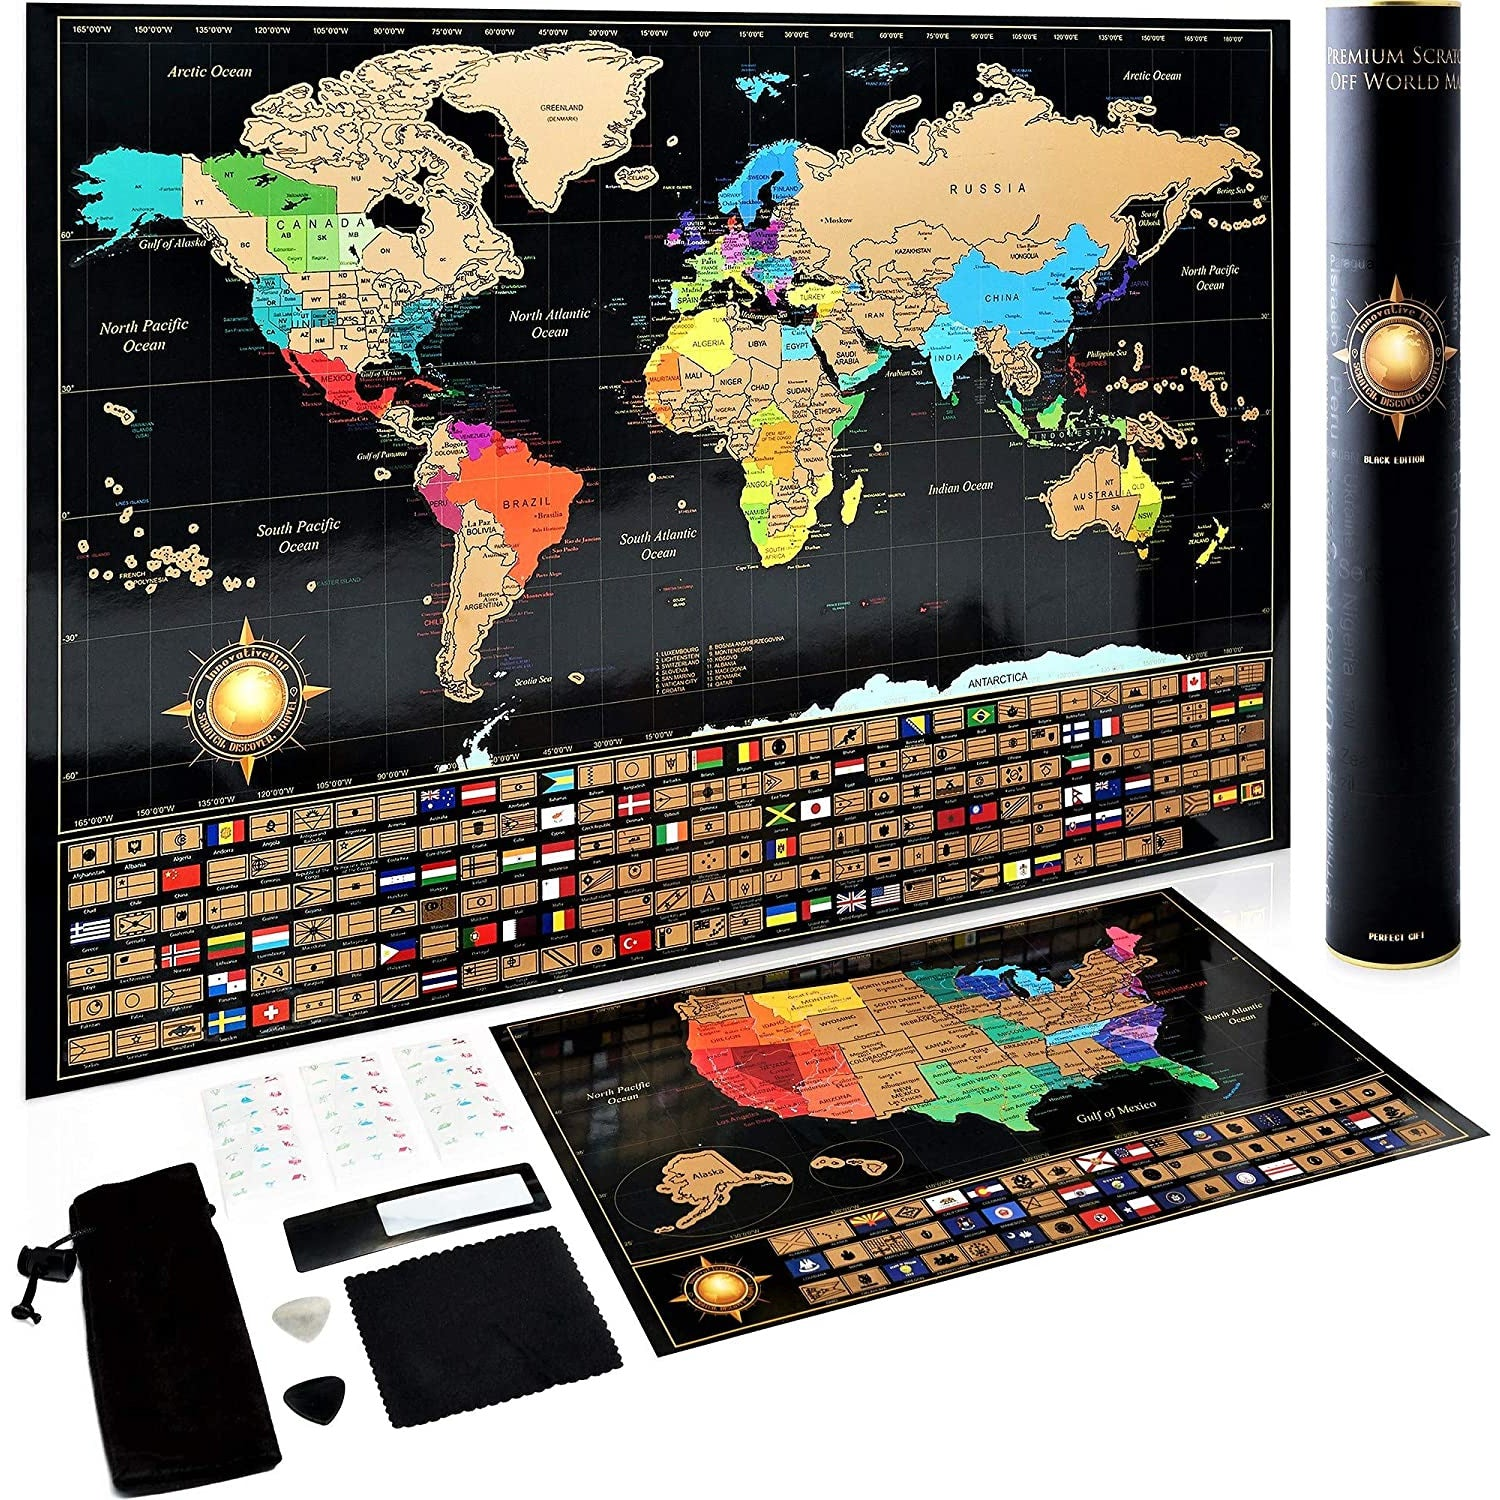 Scratch Off World Map + United State bonus Map